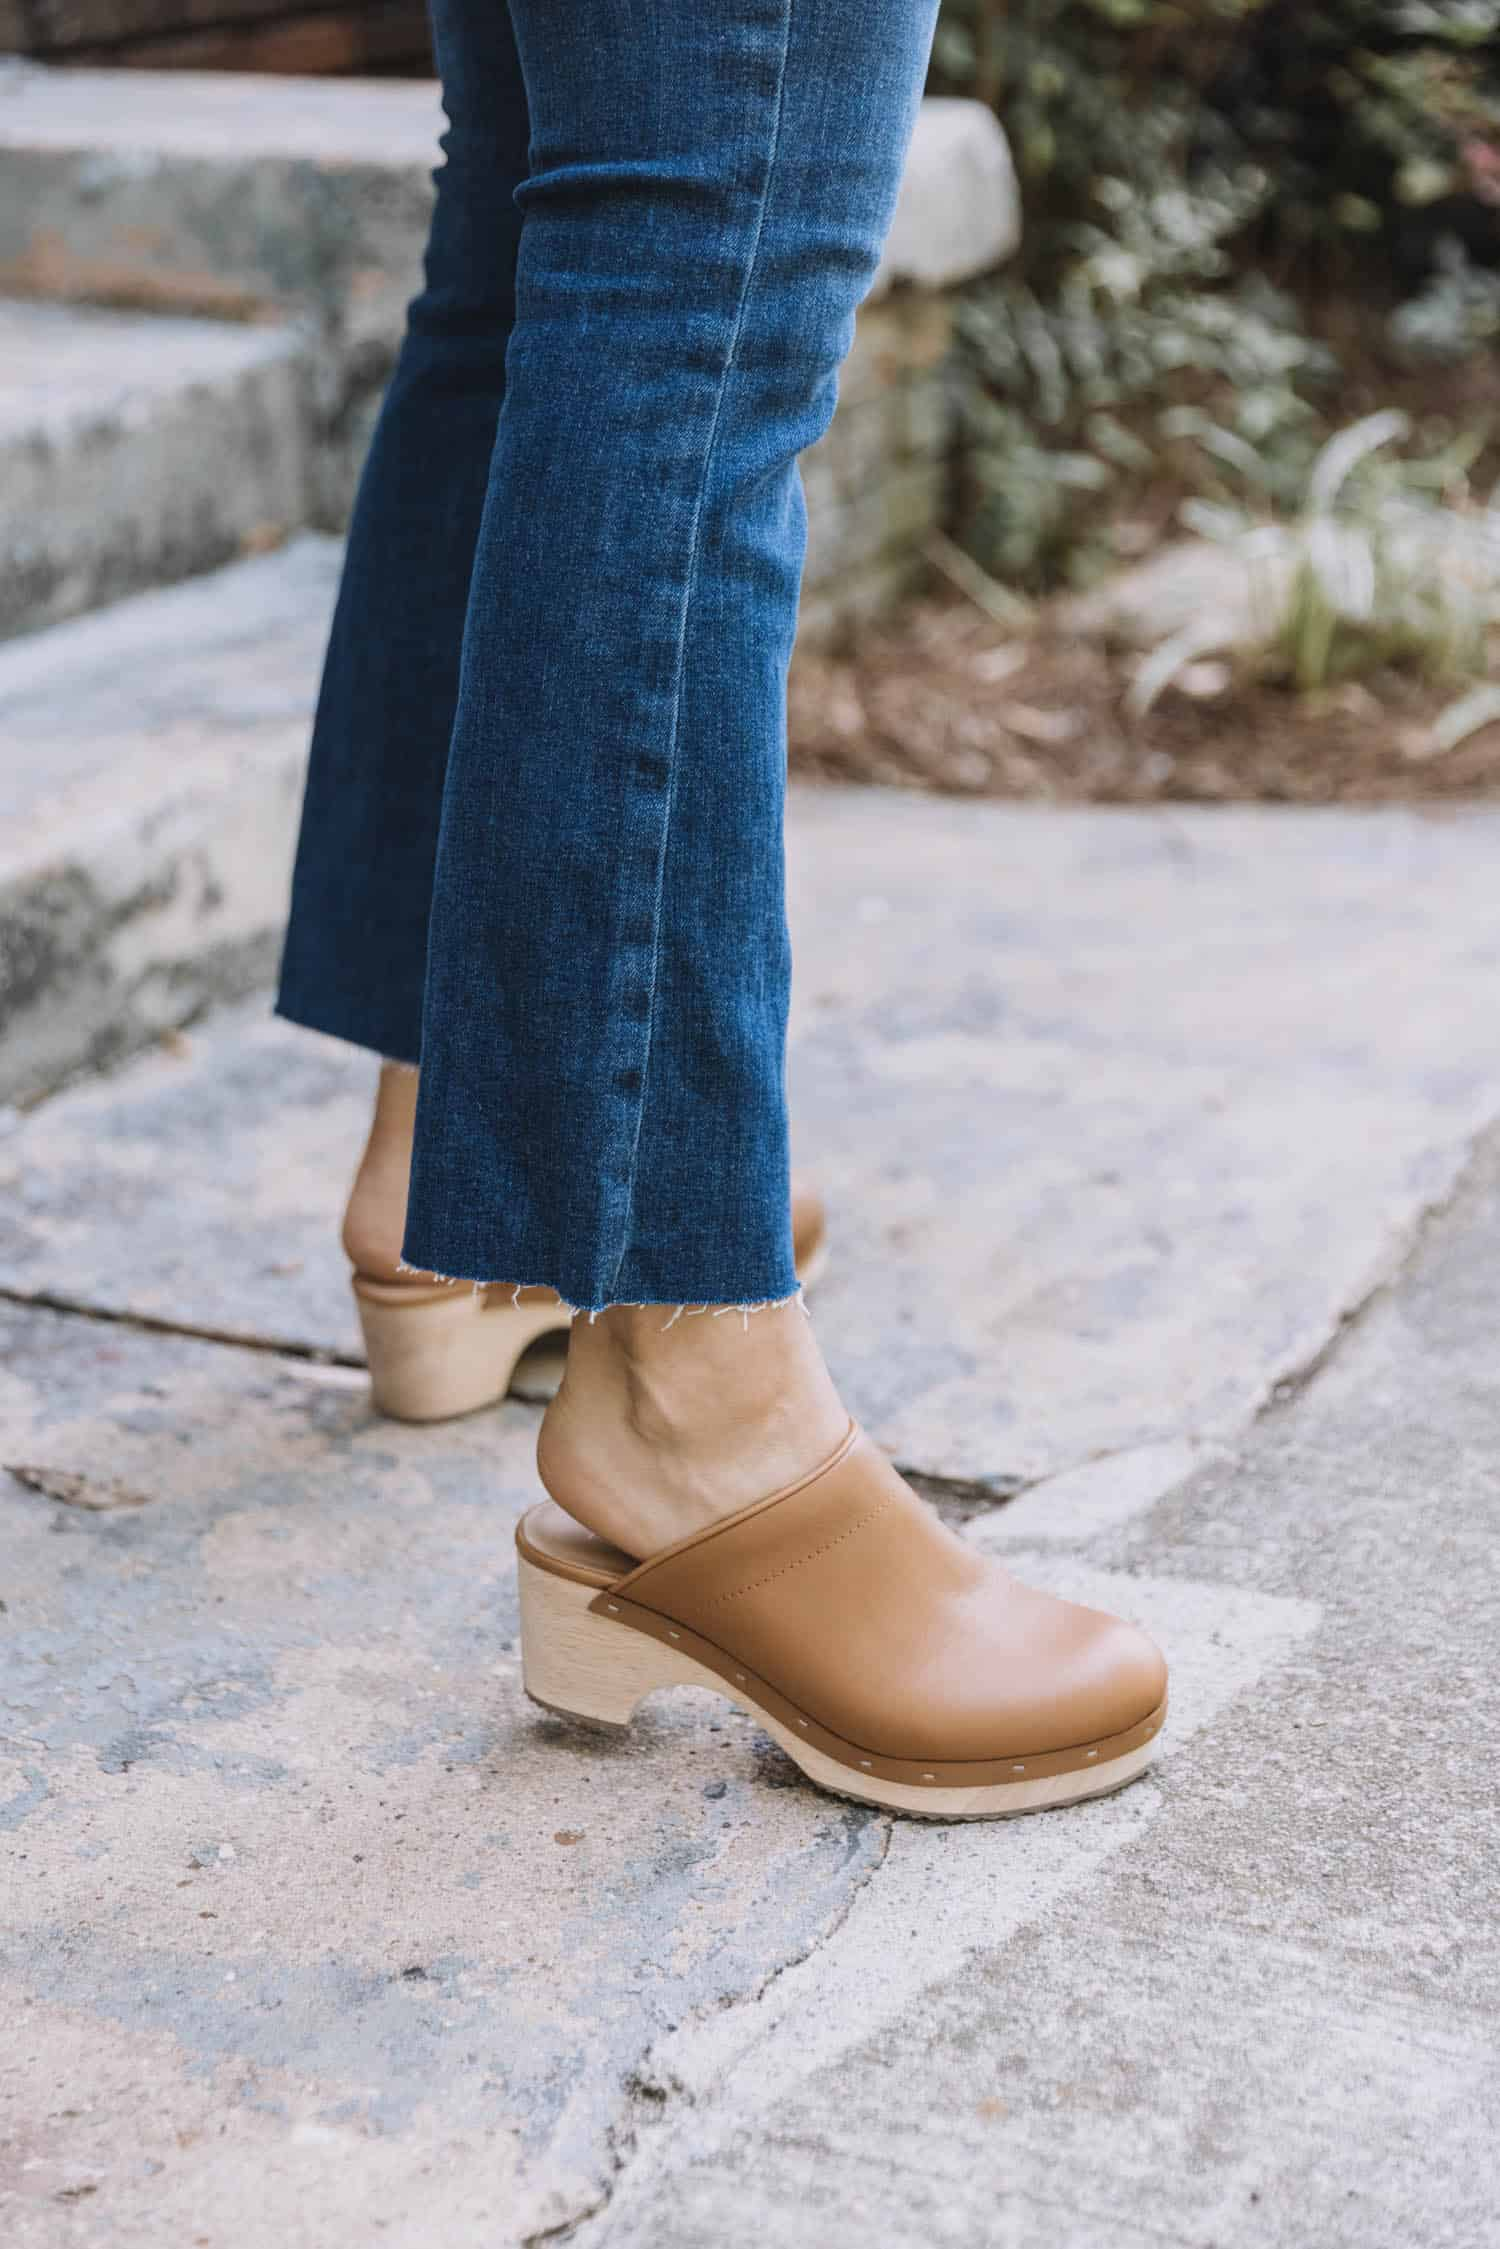 How I Plan On Styling Clogs For Fall